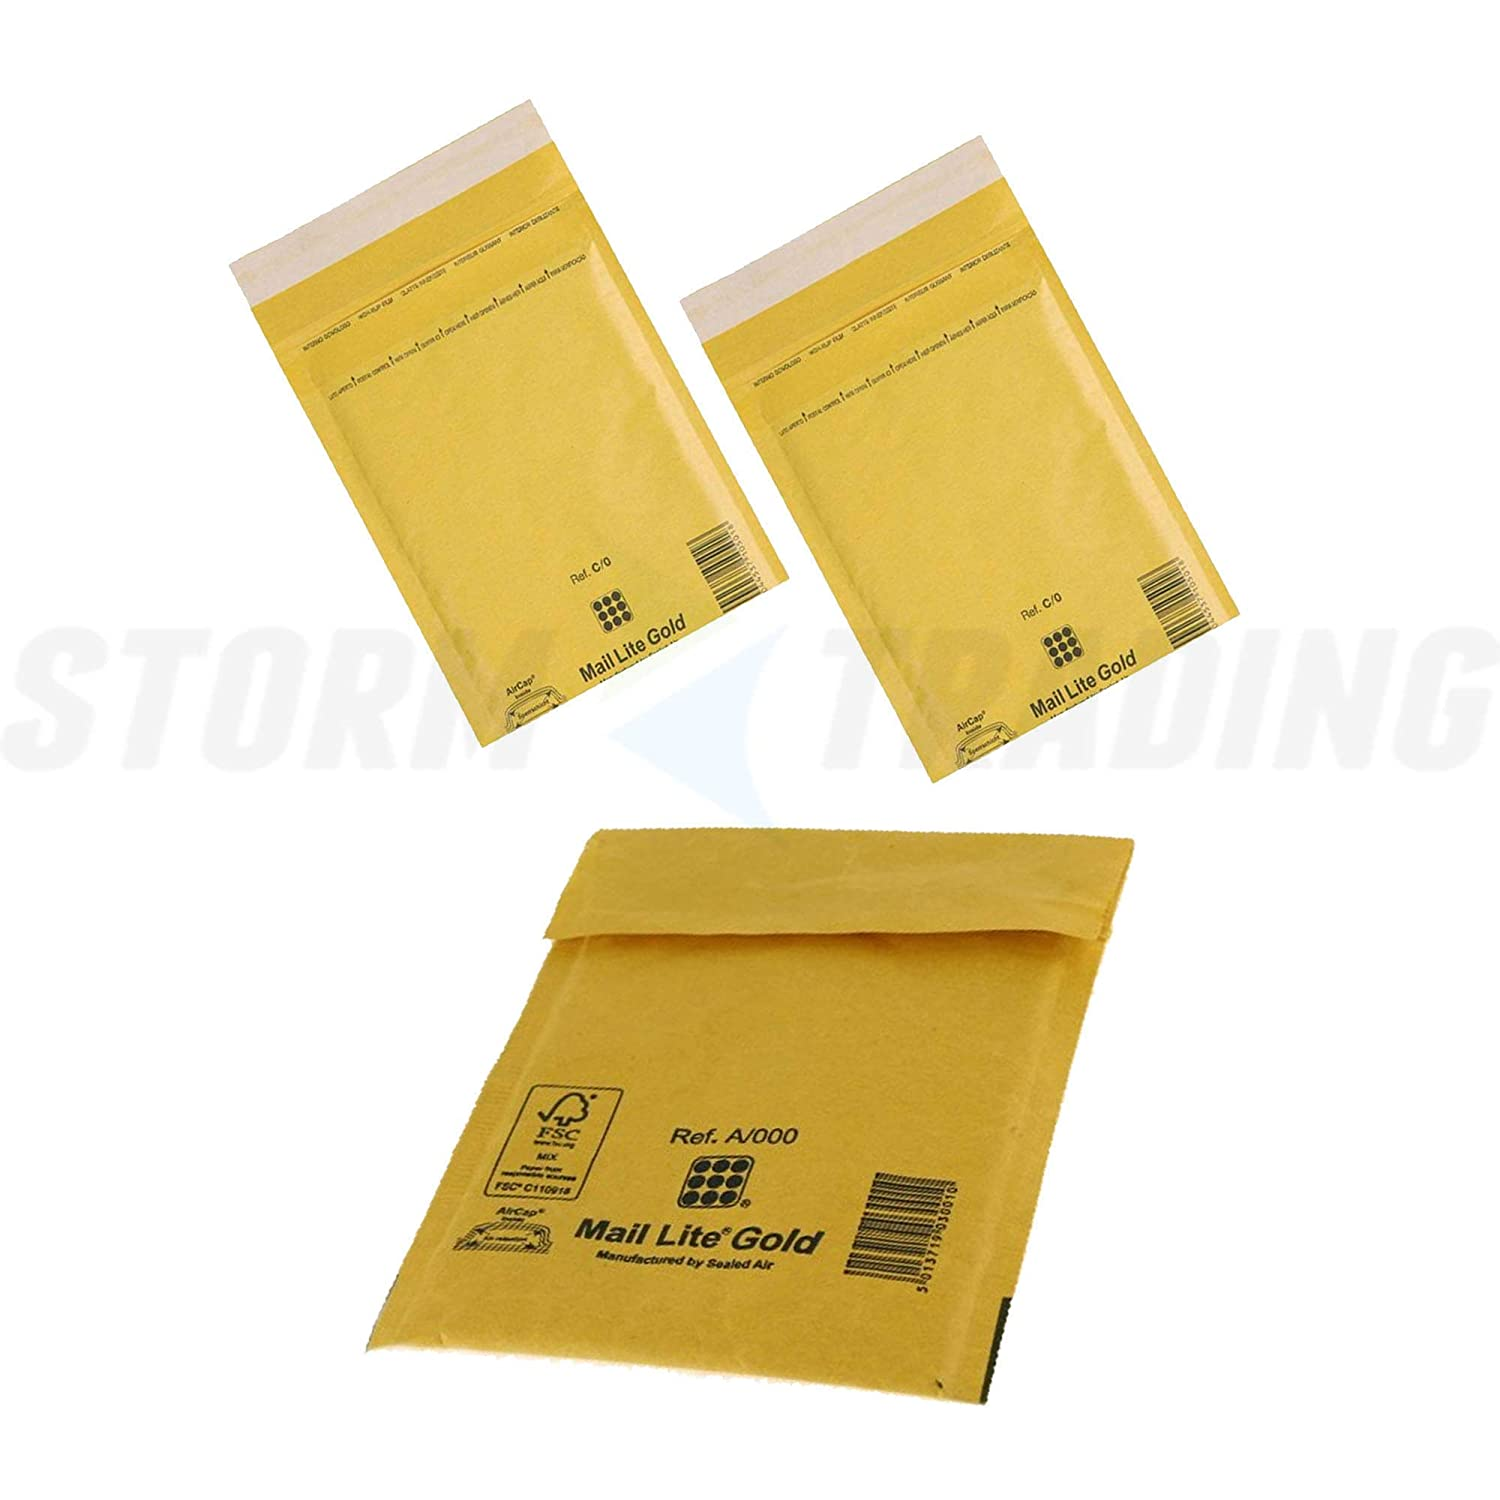 200 x Gold Mail Lite Padded Bubble Lined High Quality A/000 110x160mm Envelopes